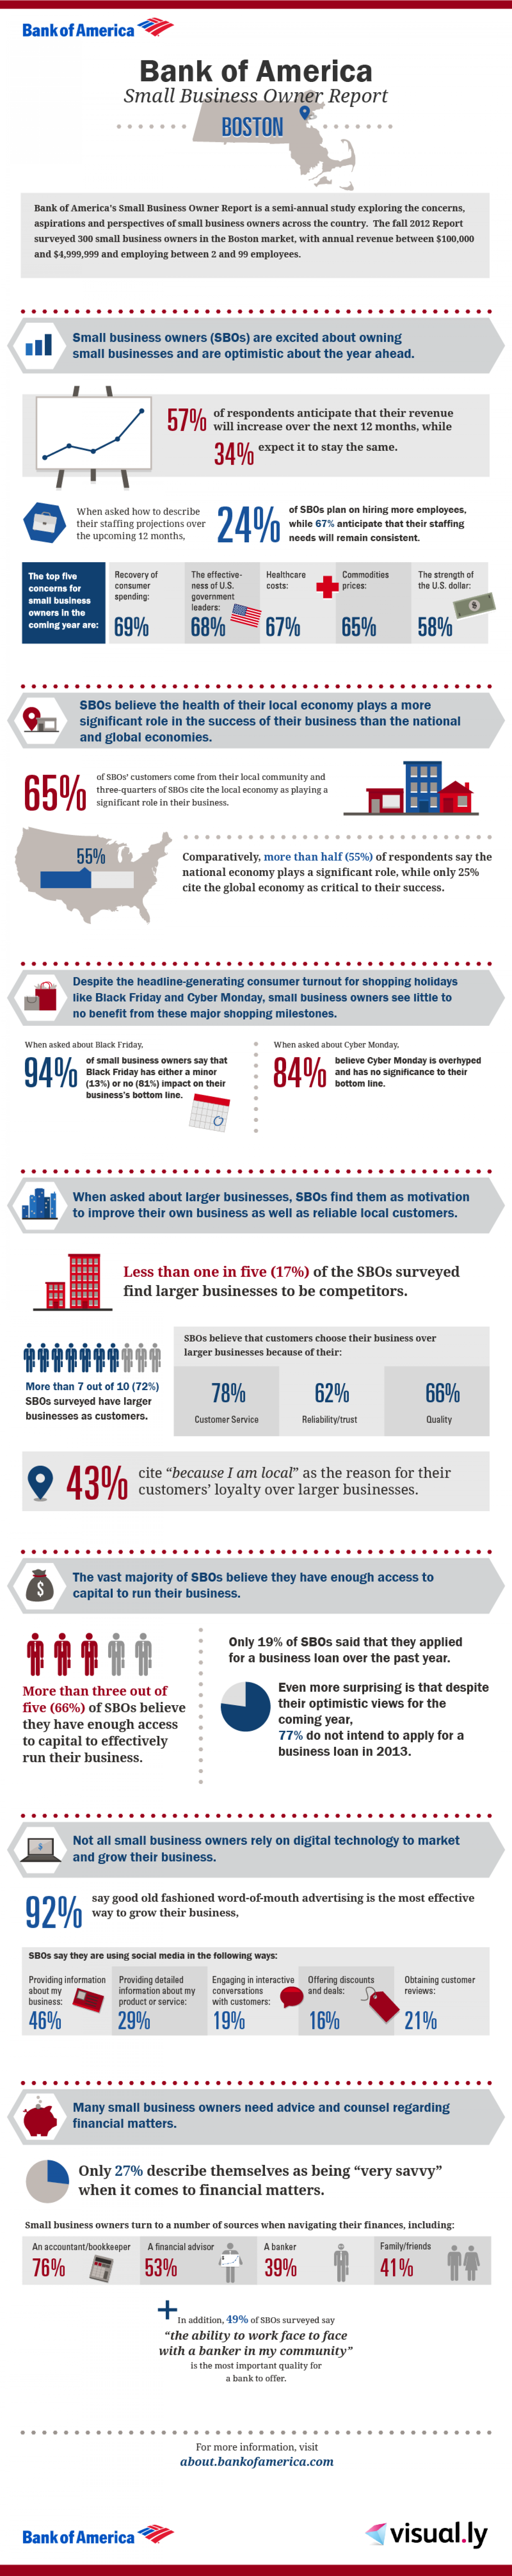 Bank of America Small Business Owner Report: Boston Local Breakdown Infographic